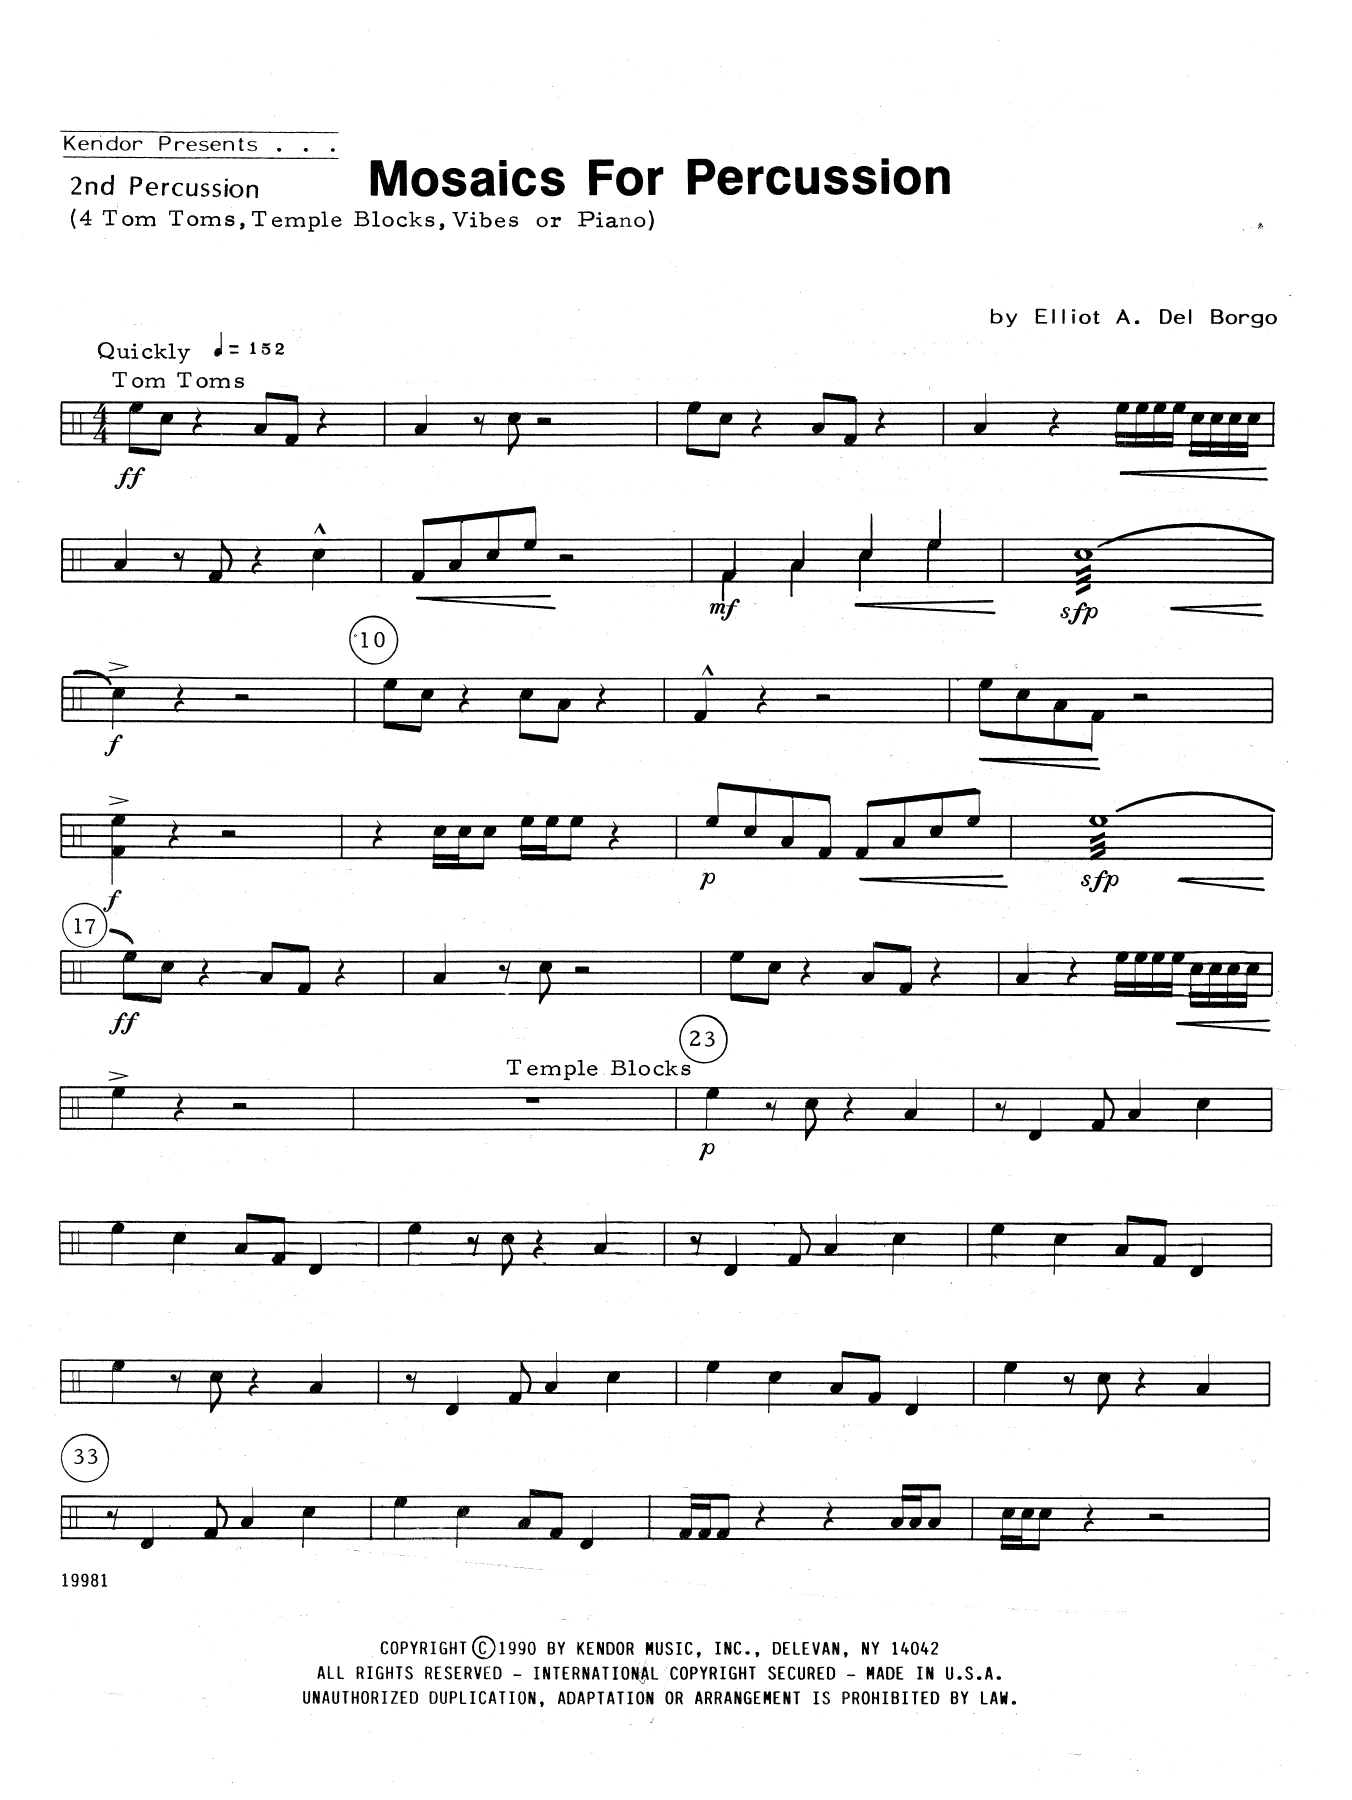 Mosaics For Percussion - Percussion 2 Sheet Music